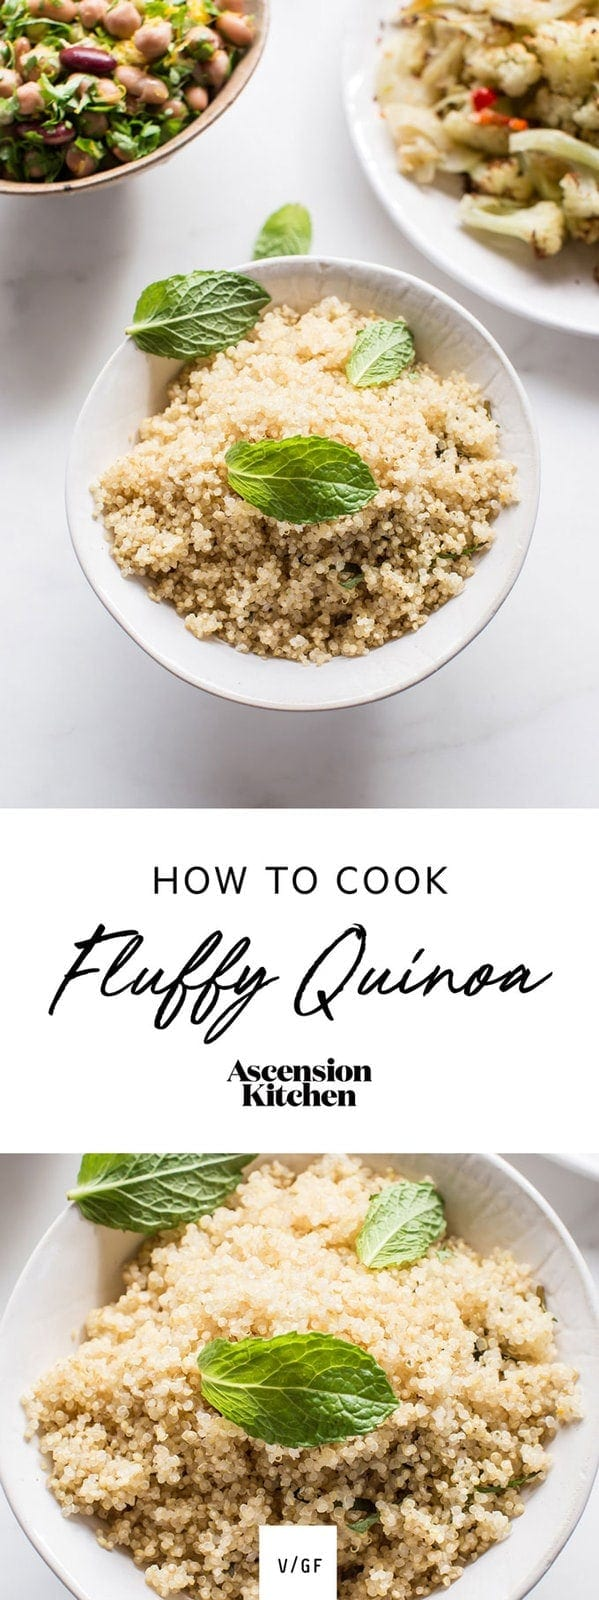 How to cook fluffy quinoa – check out my simple tip! #fluffyquinoahowtomake #fluffyquinoahowtocook #fluffyquinoatips #fluffyquinoarecipe #howtocookfluffyquinoa #whole30recipes #veganrecipes #whole30dinner #AscensionKitchen // Pin to your own inspiration board! //